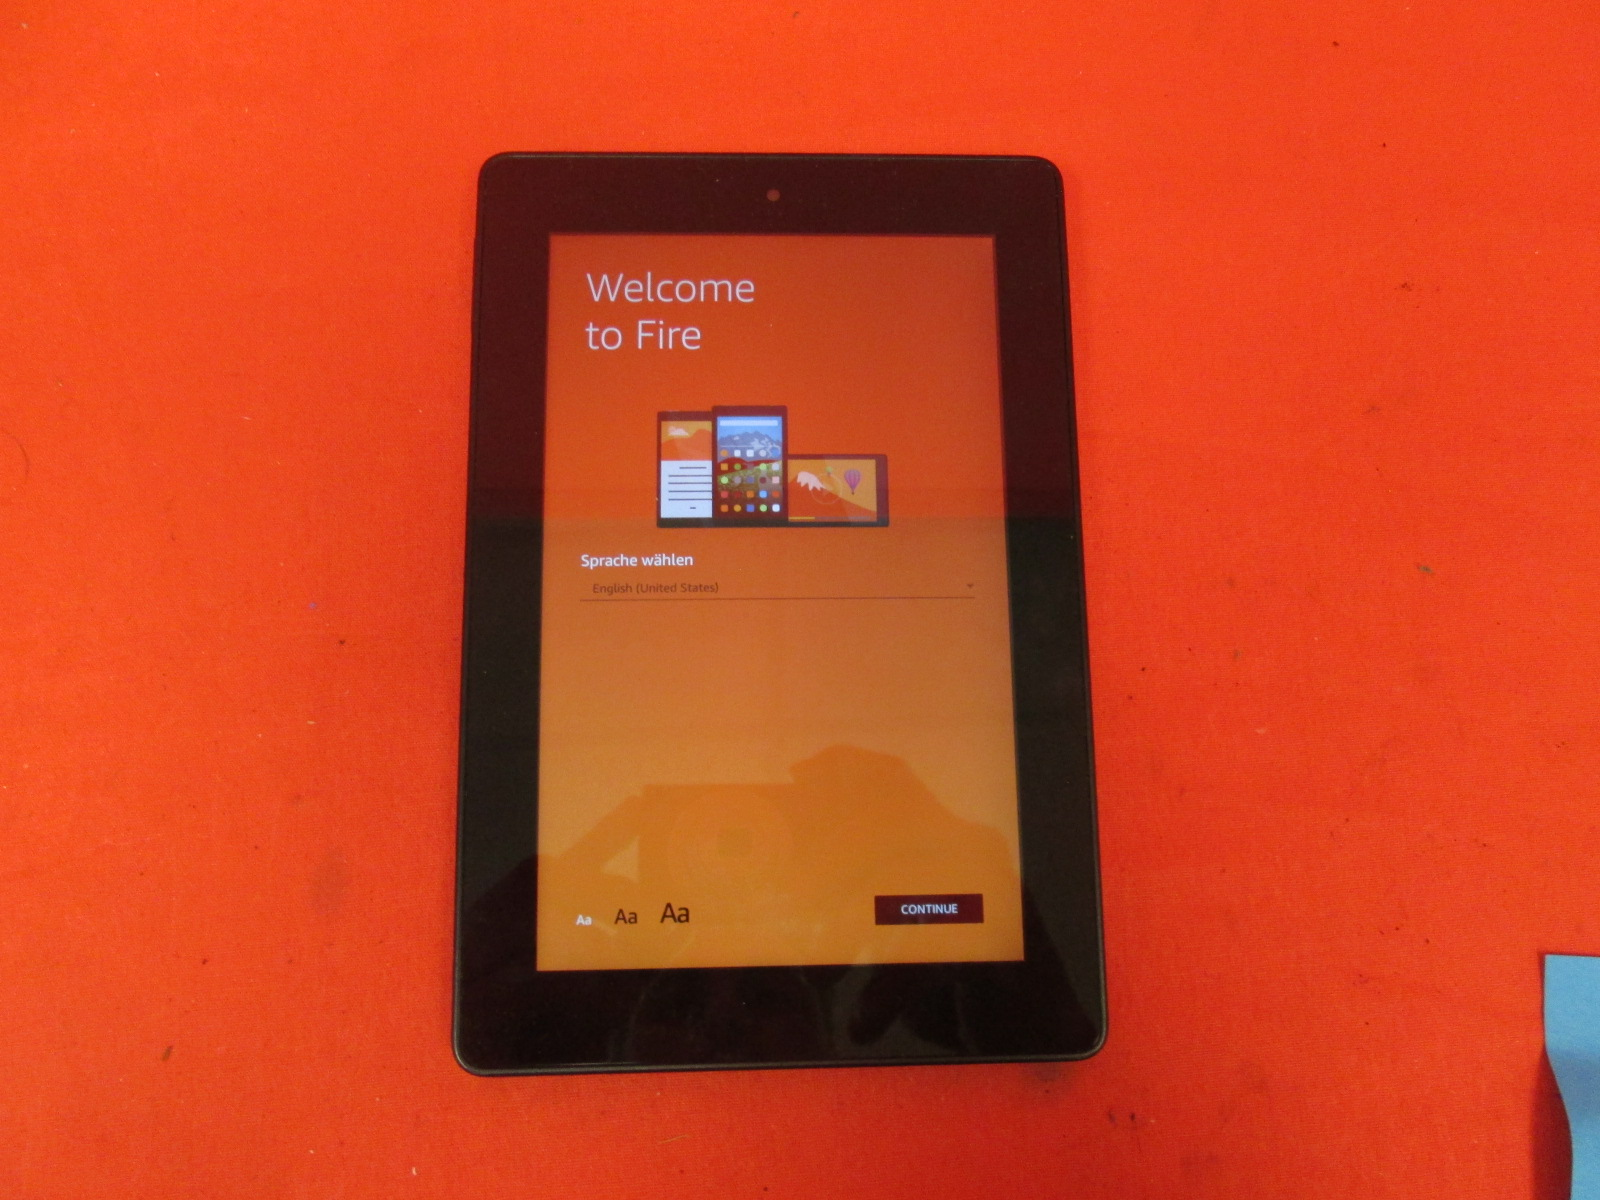 Kindle Fire HD 7 4th Generation Wi-Fi 7 Inch Tablet